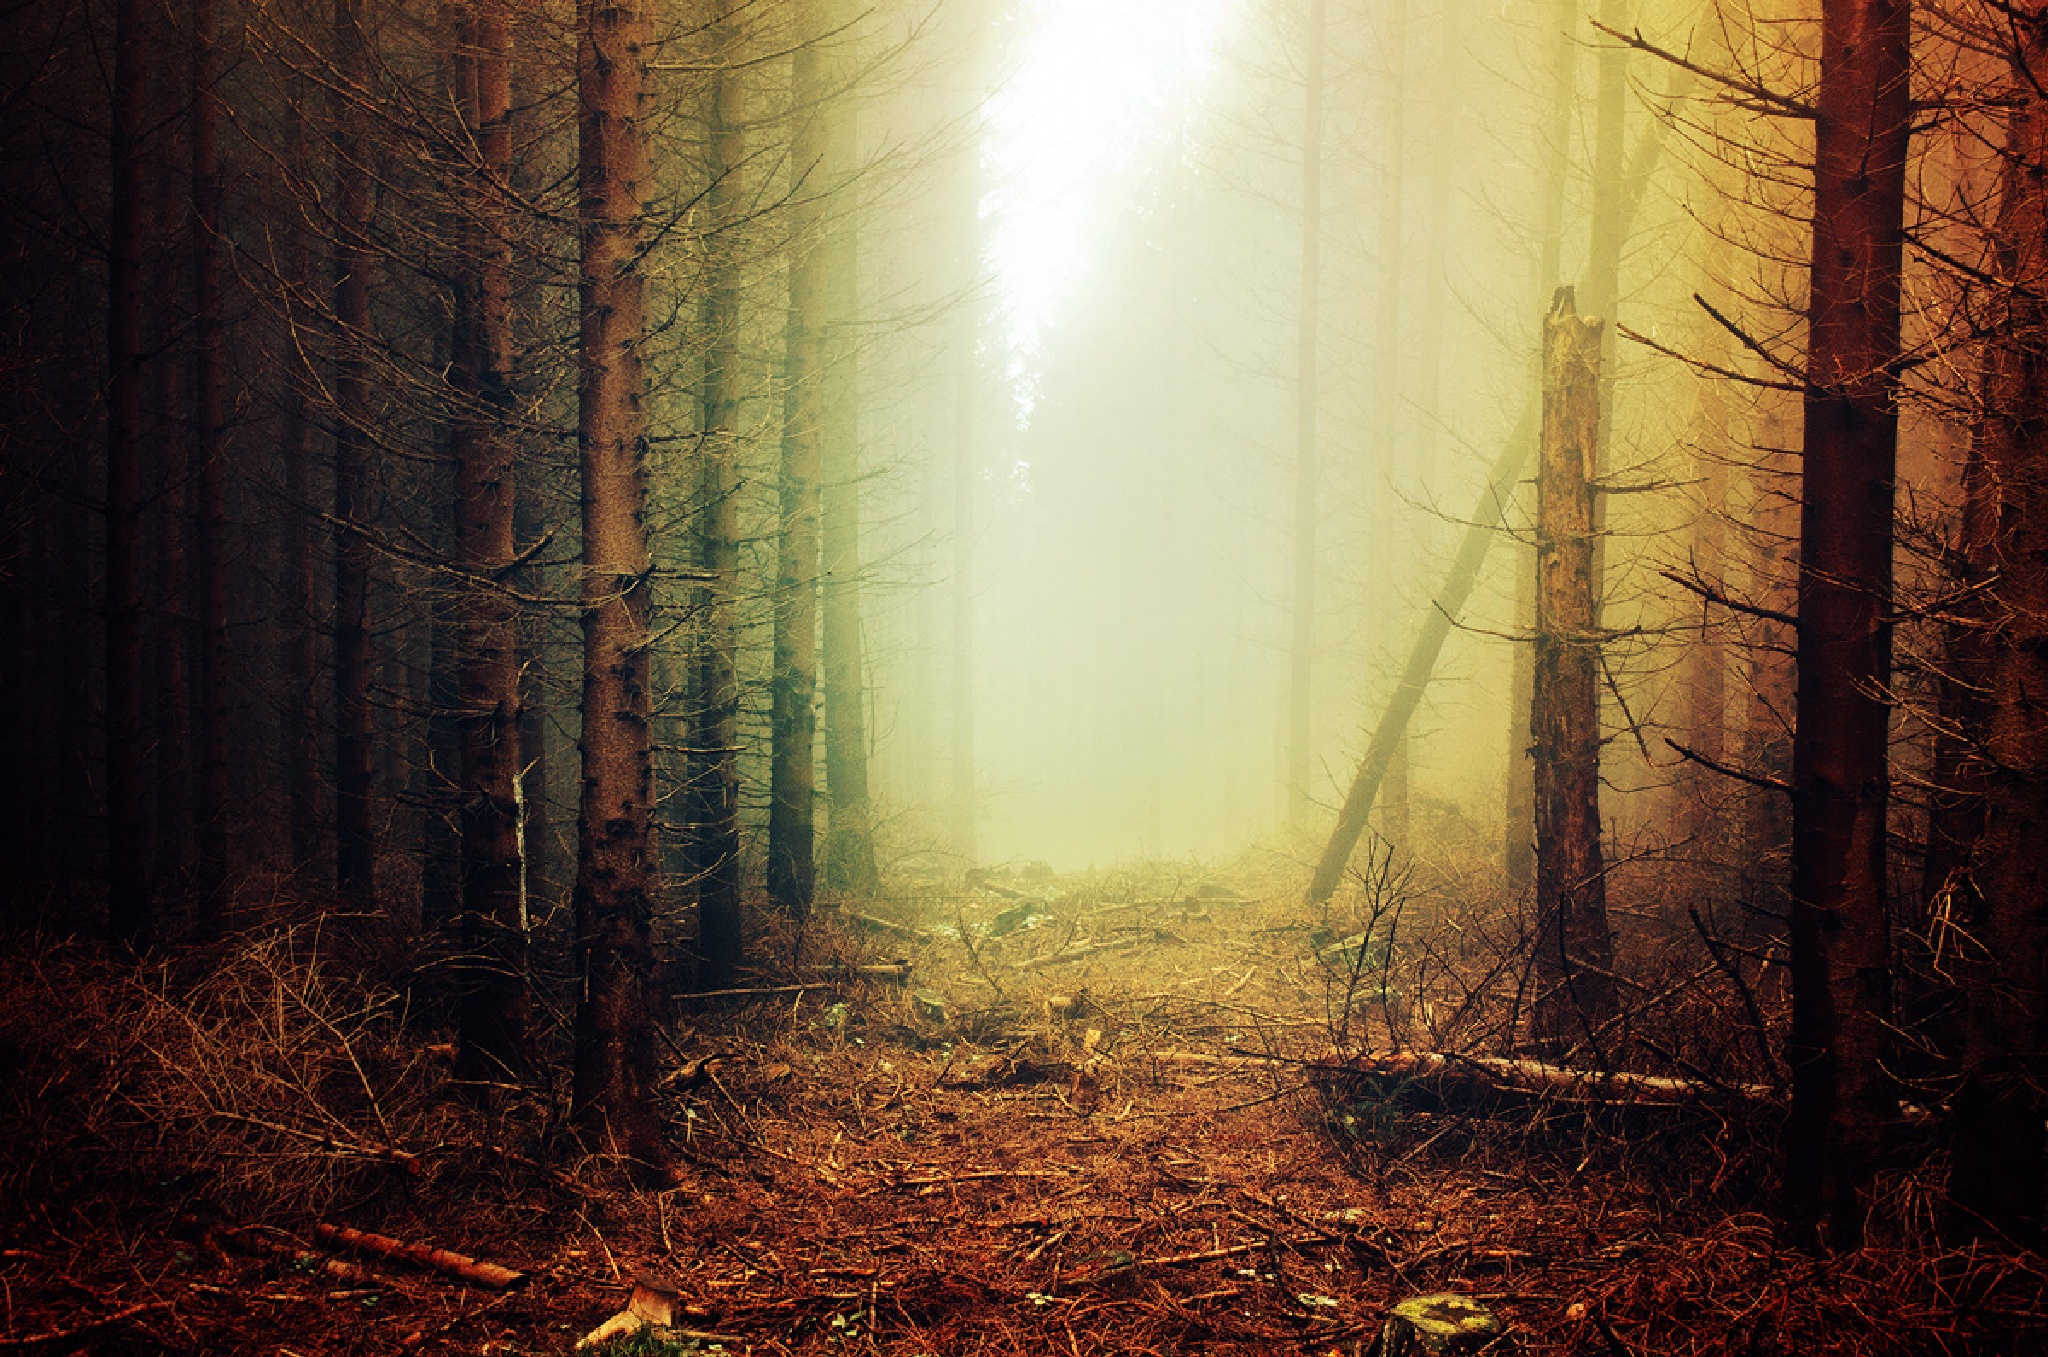 If These Trees Could Talk XXXIV. by Zsolt Zsigmond